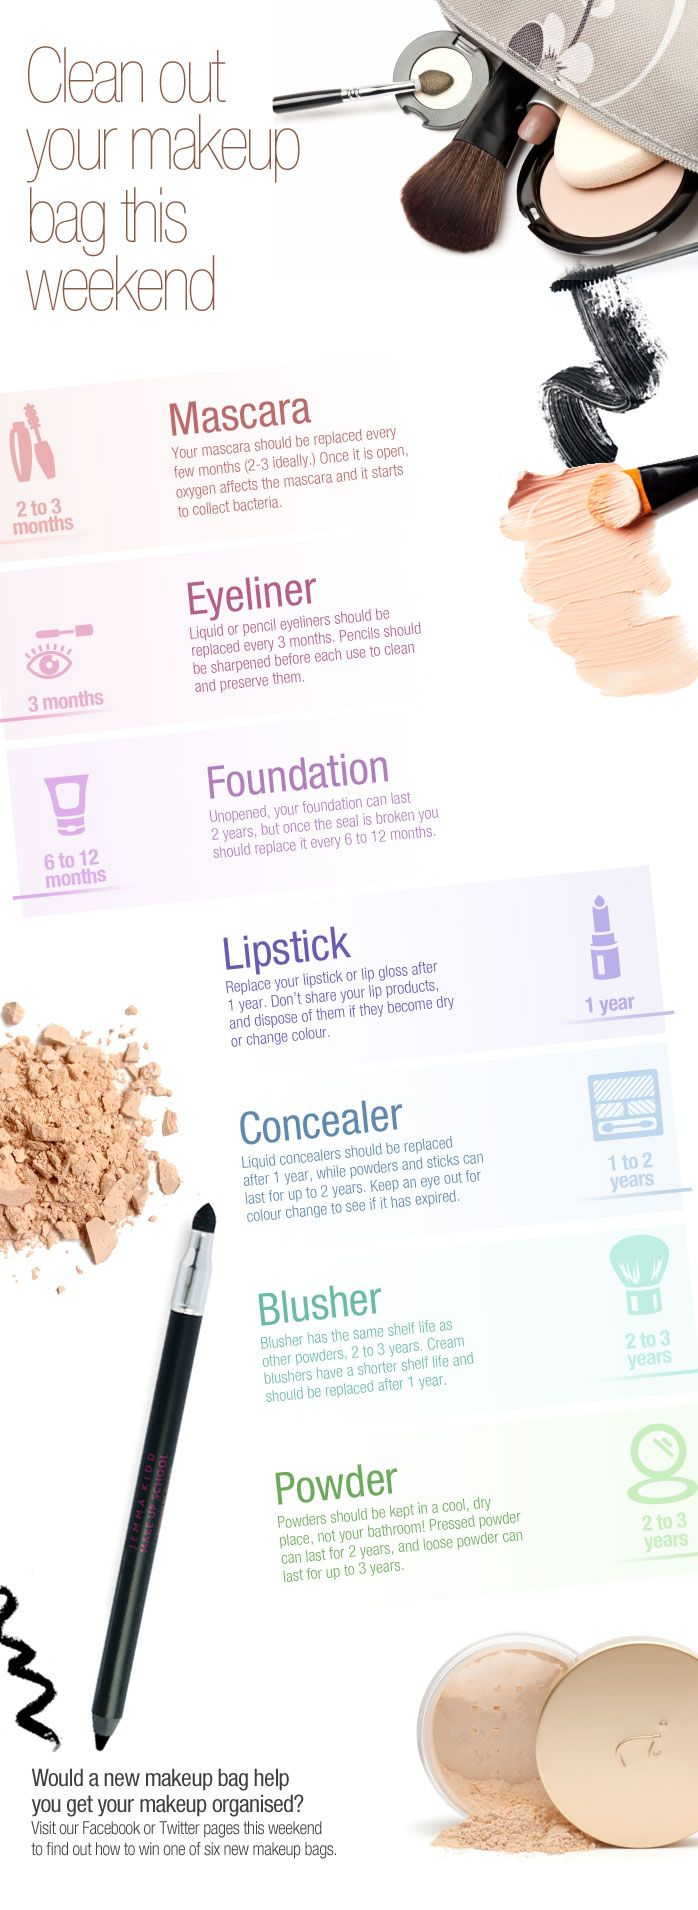 Springclean your makeup kit!